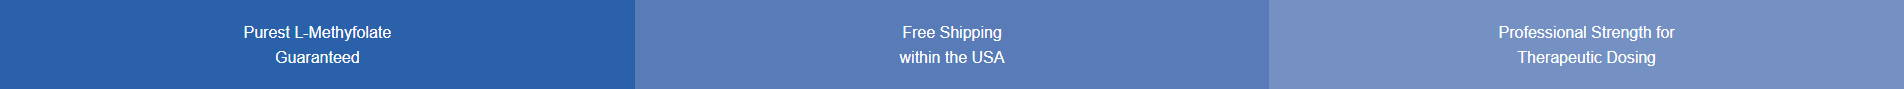 purest l-methyfolate guaranteed - free shipping within the USA - professional strength for therapeutic dosing